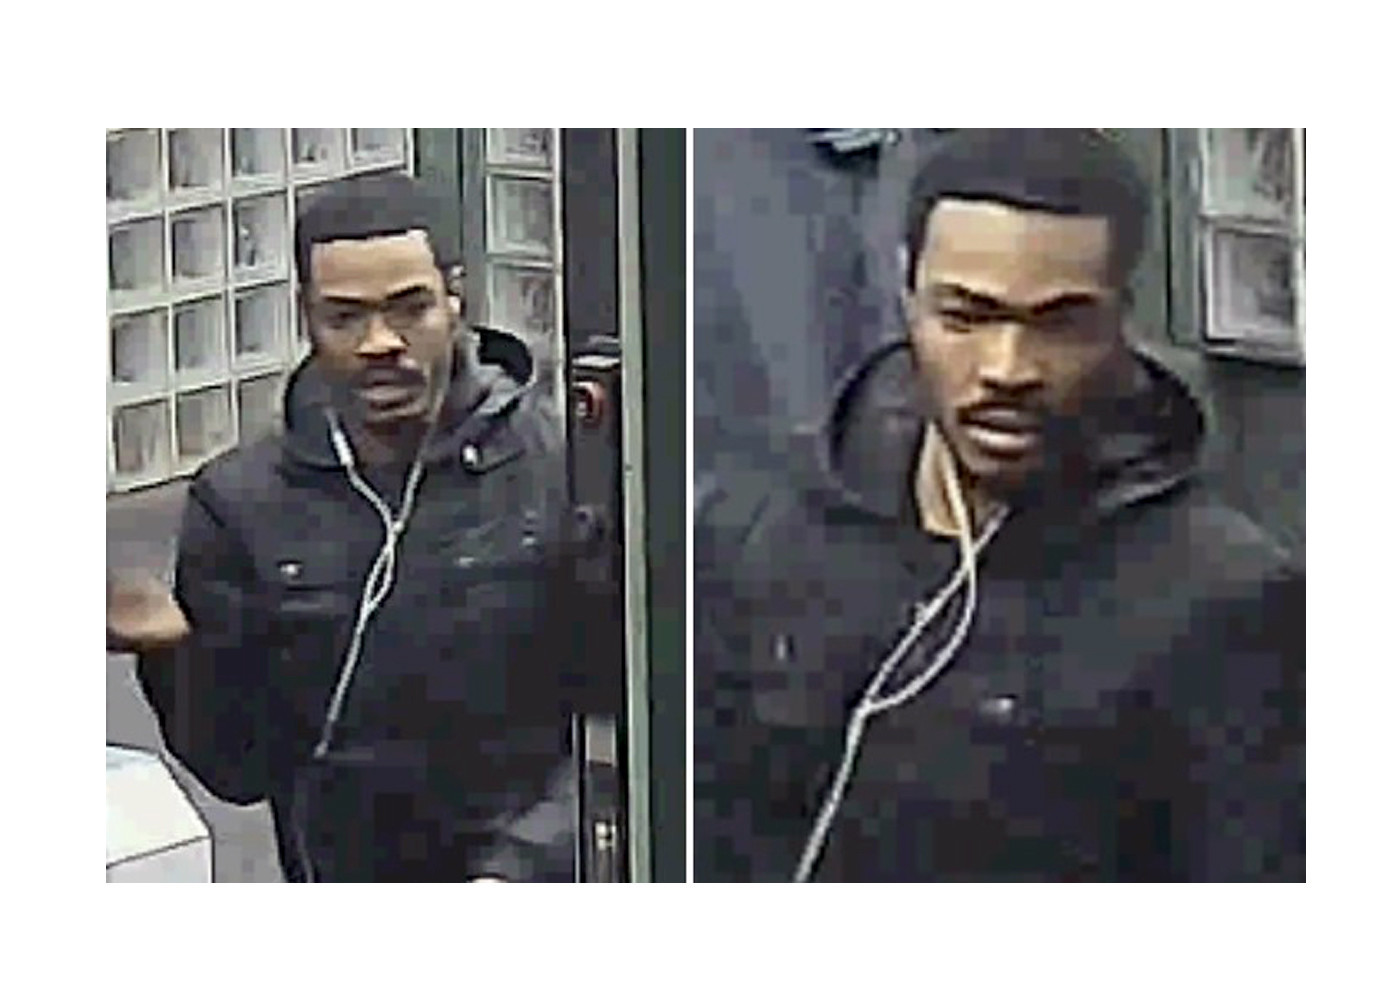 Unhinged straphanger sucker punches 74-year-old man on subway